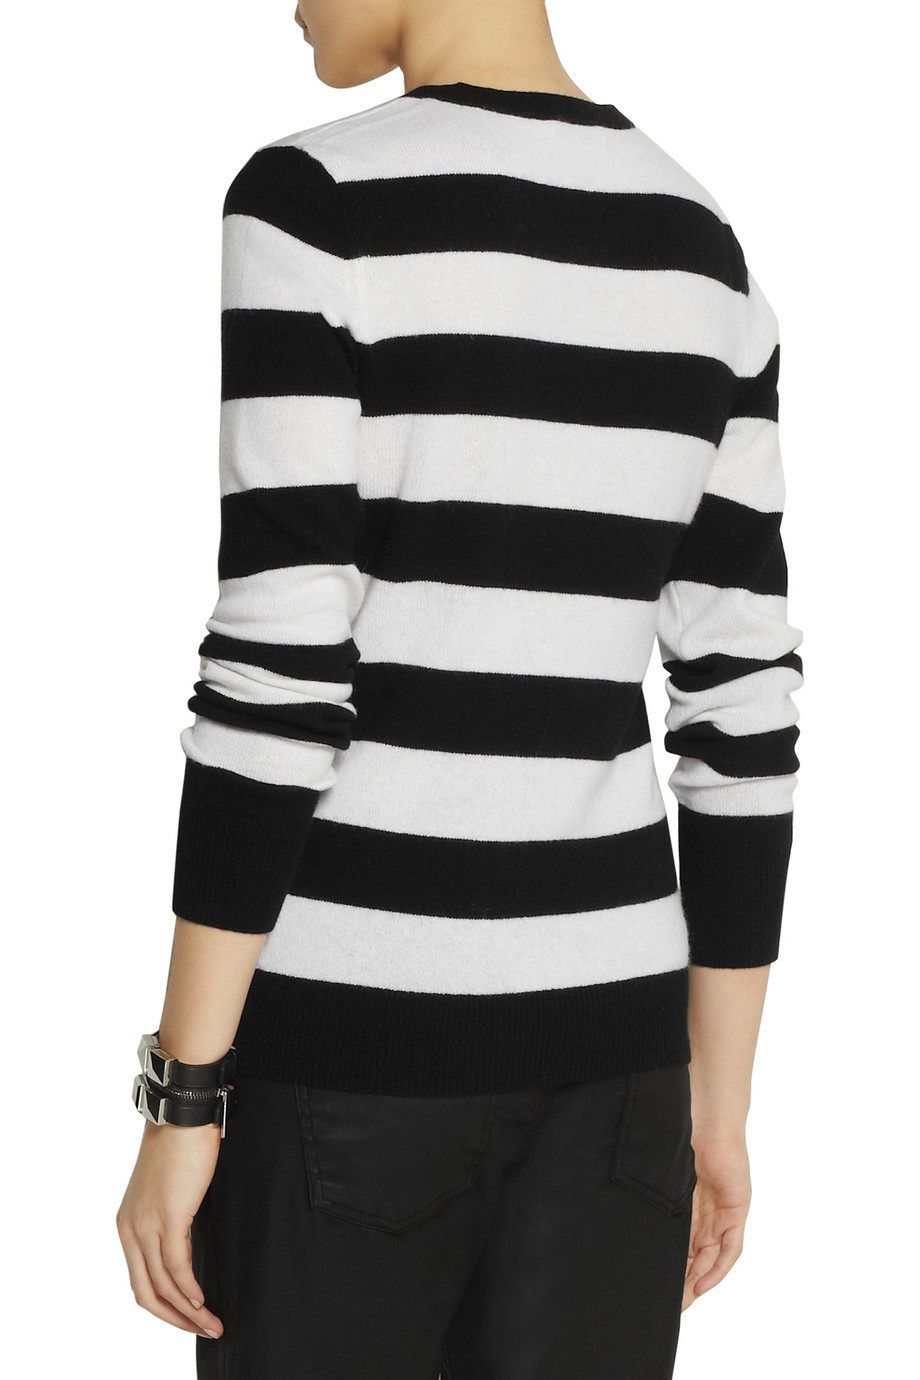 Equipment Shane striped cashmere sweater – 63% at THE OUTNET.COM